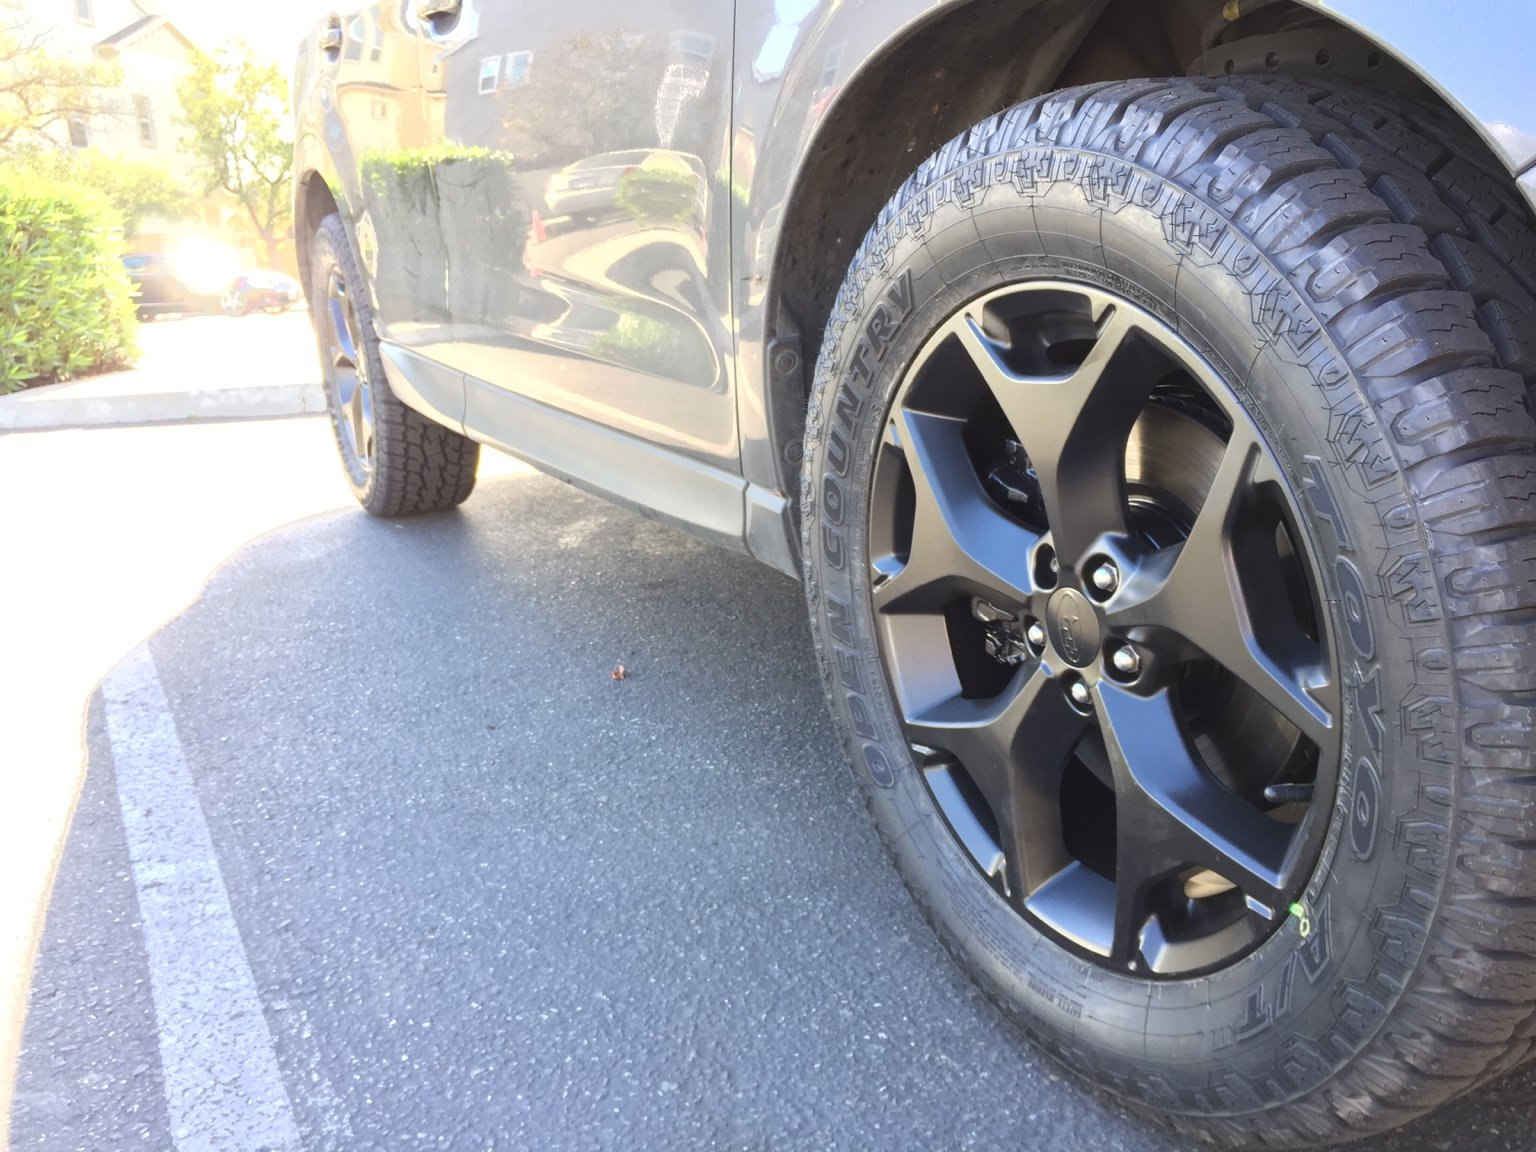 Subaru Forester 2.0 Xt Premium >> ('14-'18) SJ FXT Wheel/Tire Fitment Information - Page 18 - Subaru Forester Owners Forum